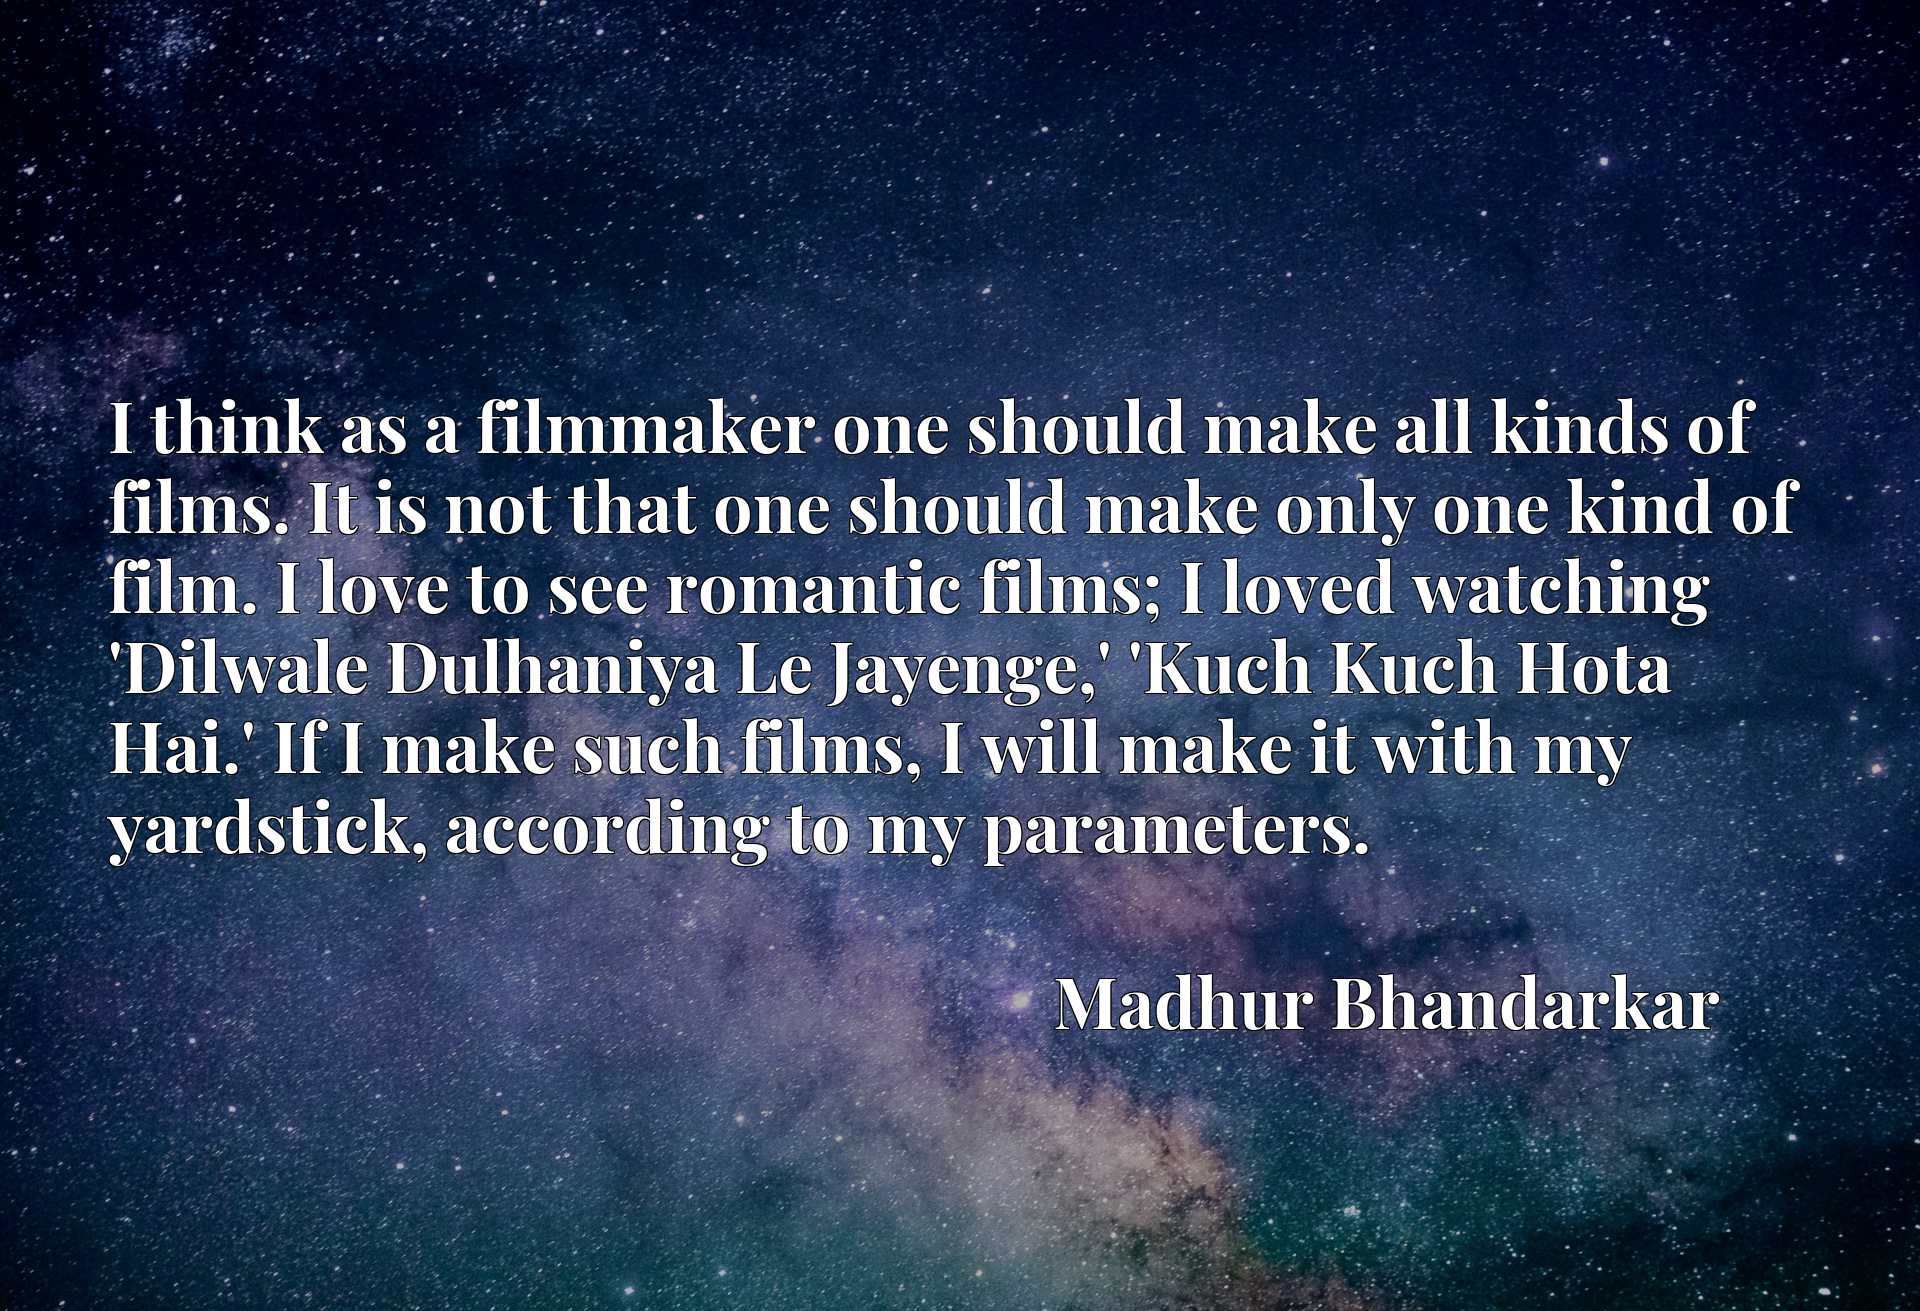 I think as a filmmaker one should make all kinds of films. It is not that one should make only one kind of film. I love to see romantic films; I loved watching 'Dilwale Dulhaniya Le Jayenge,' 'Kuch Kuch Hota Hai.' If I make such films, I will make it with my yardstick, according to my parameters.